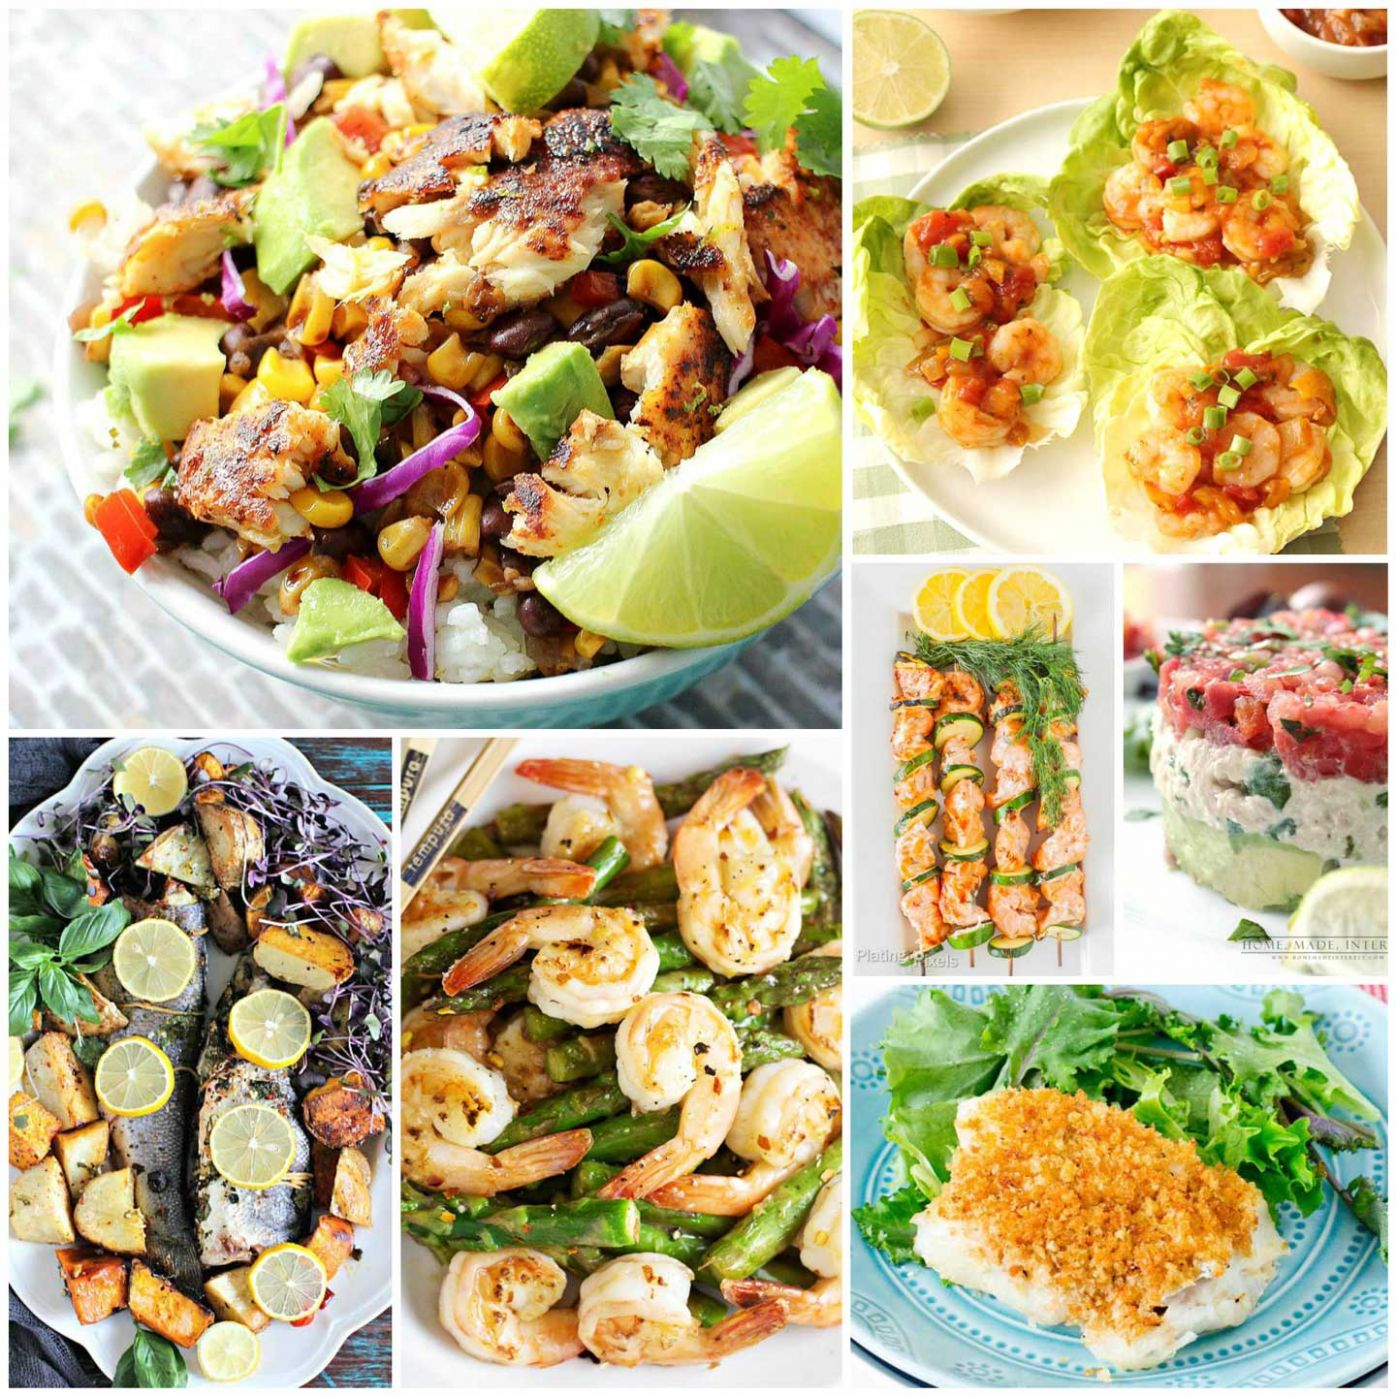 12 All-Time Best Healthy, Easy Seafood and Fish Recipes